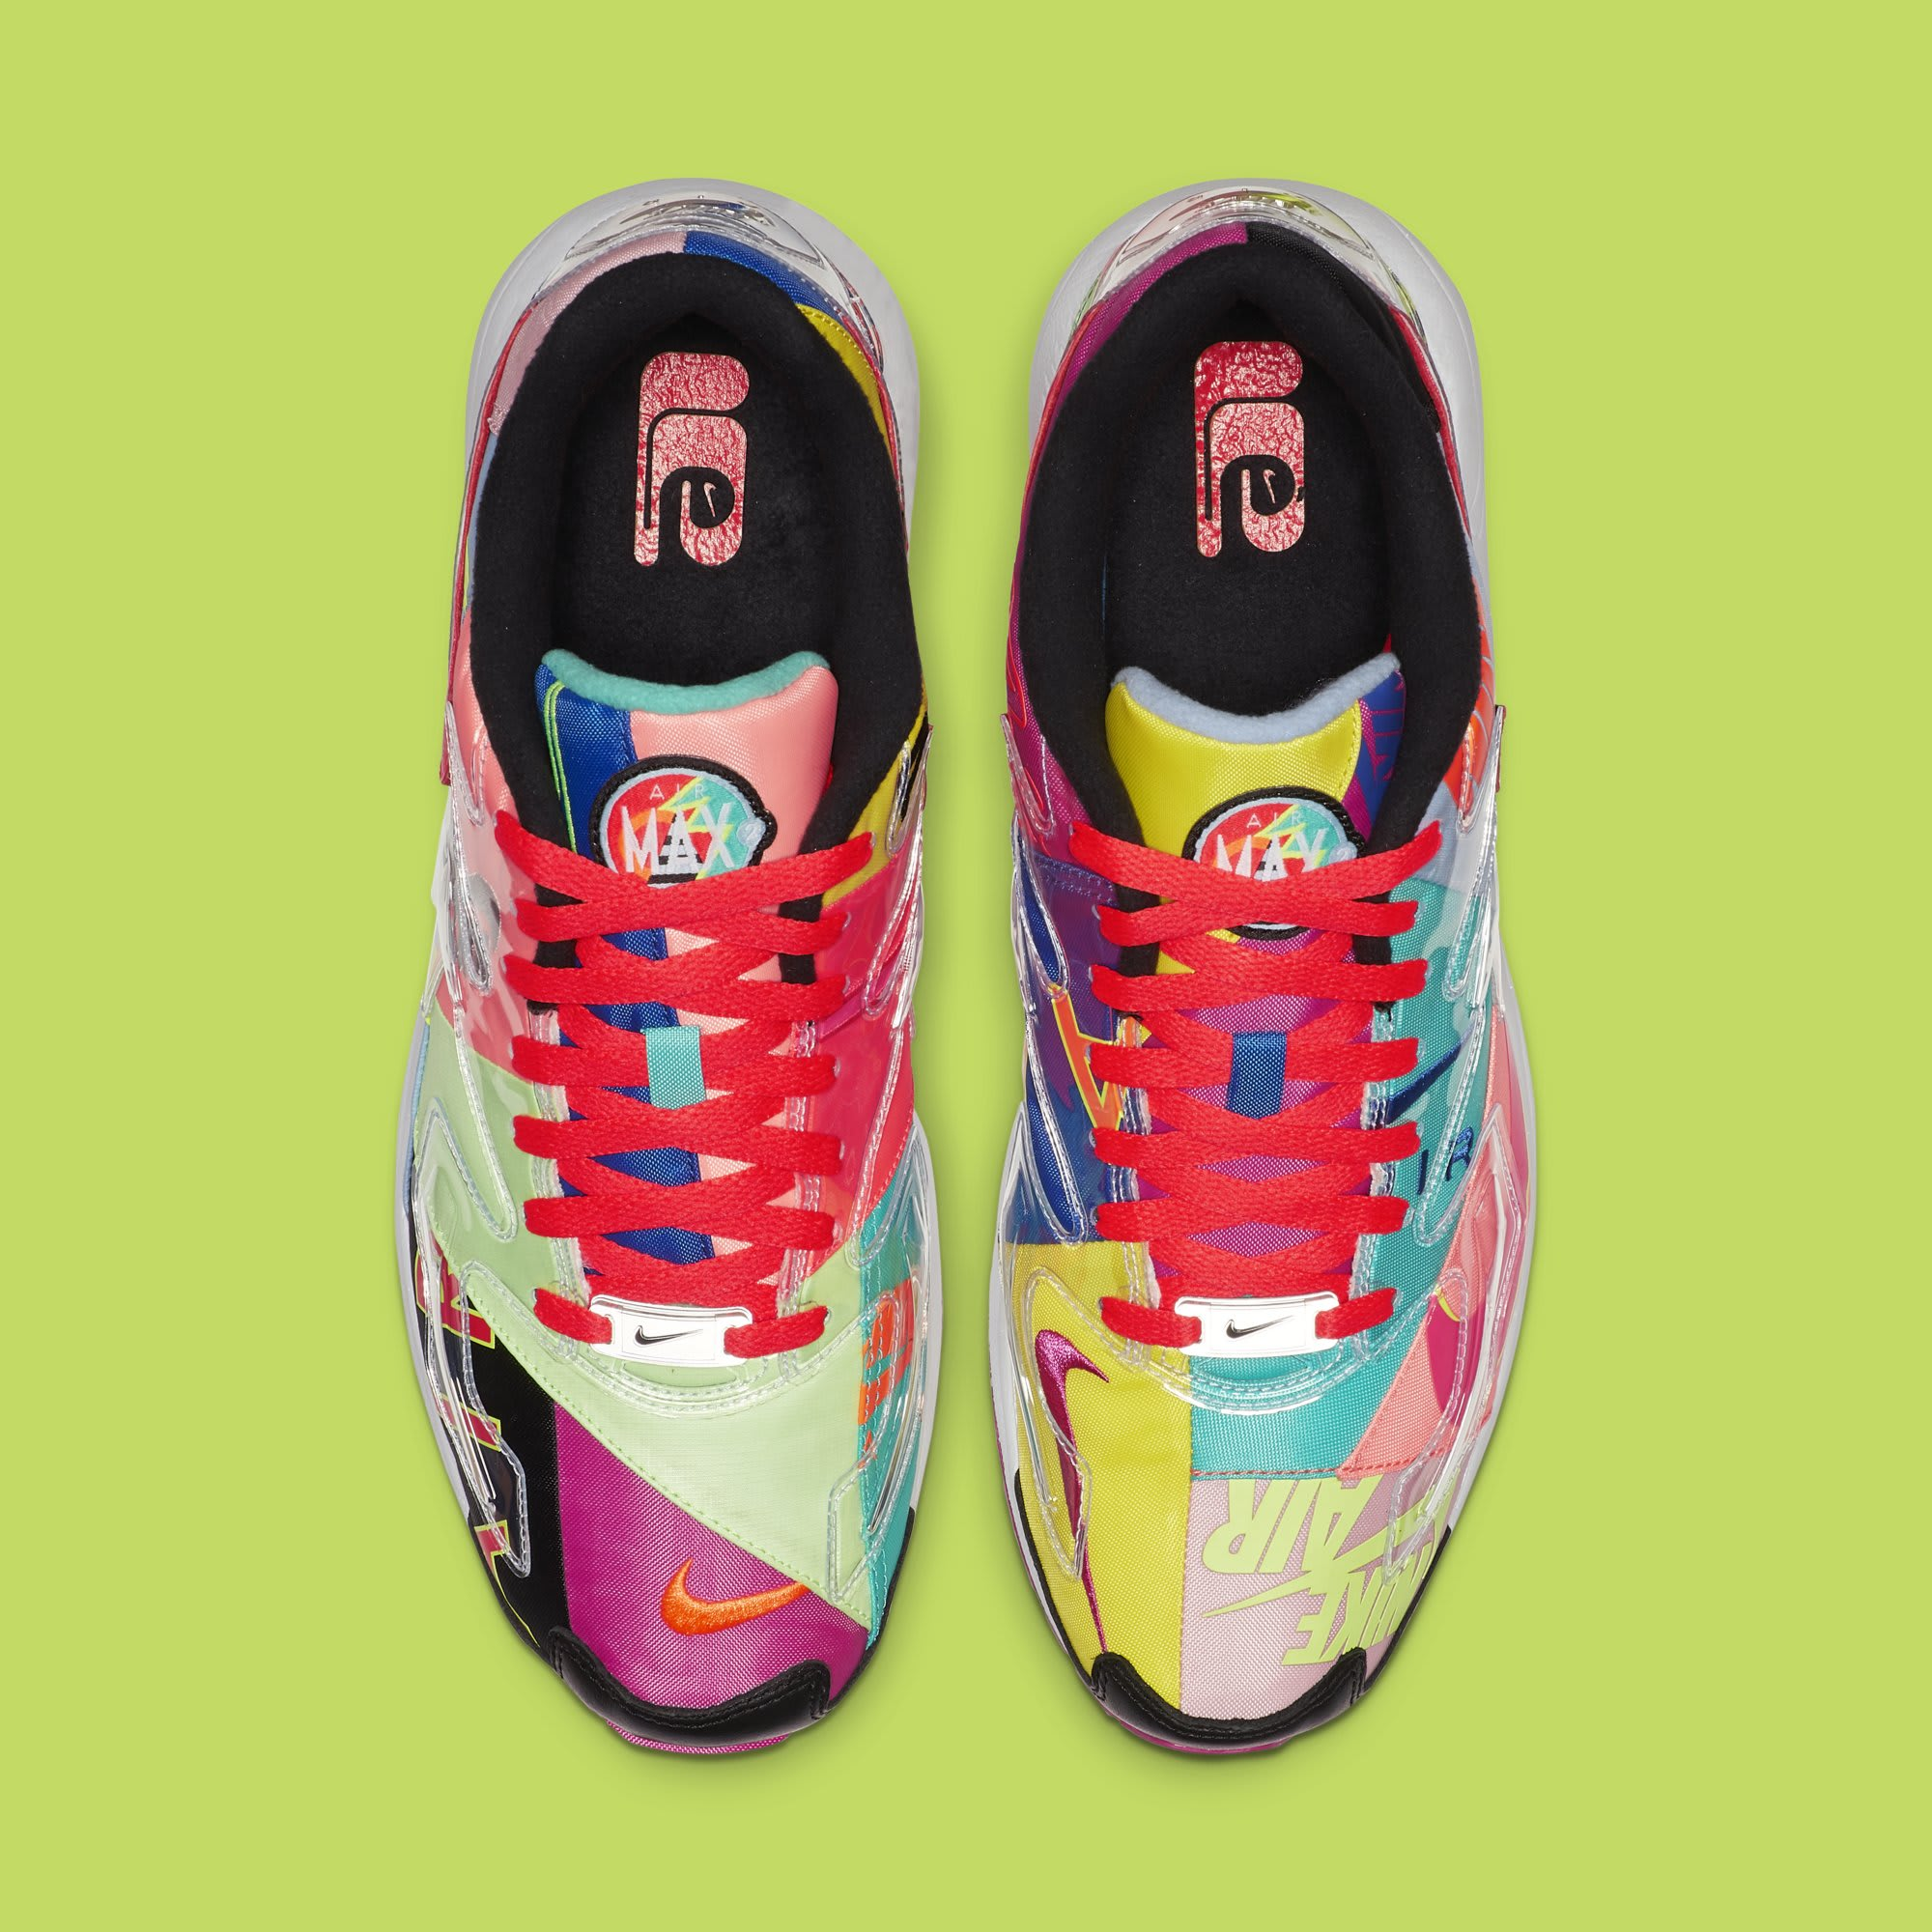 Atmos x Nike Air Max2 Light BV7406-001 (Top)